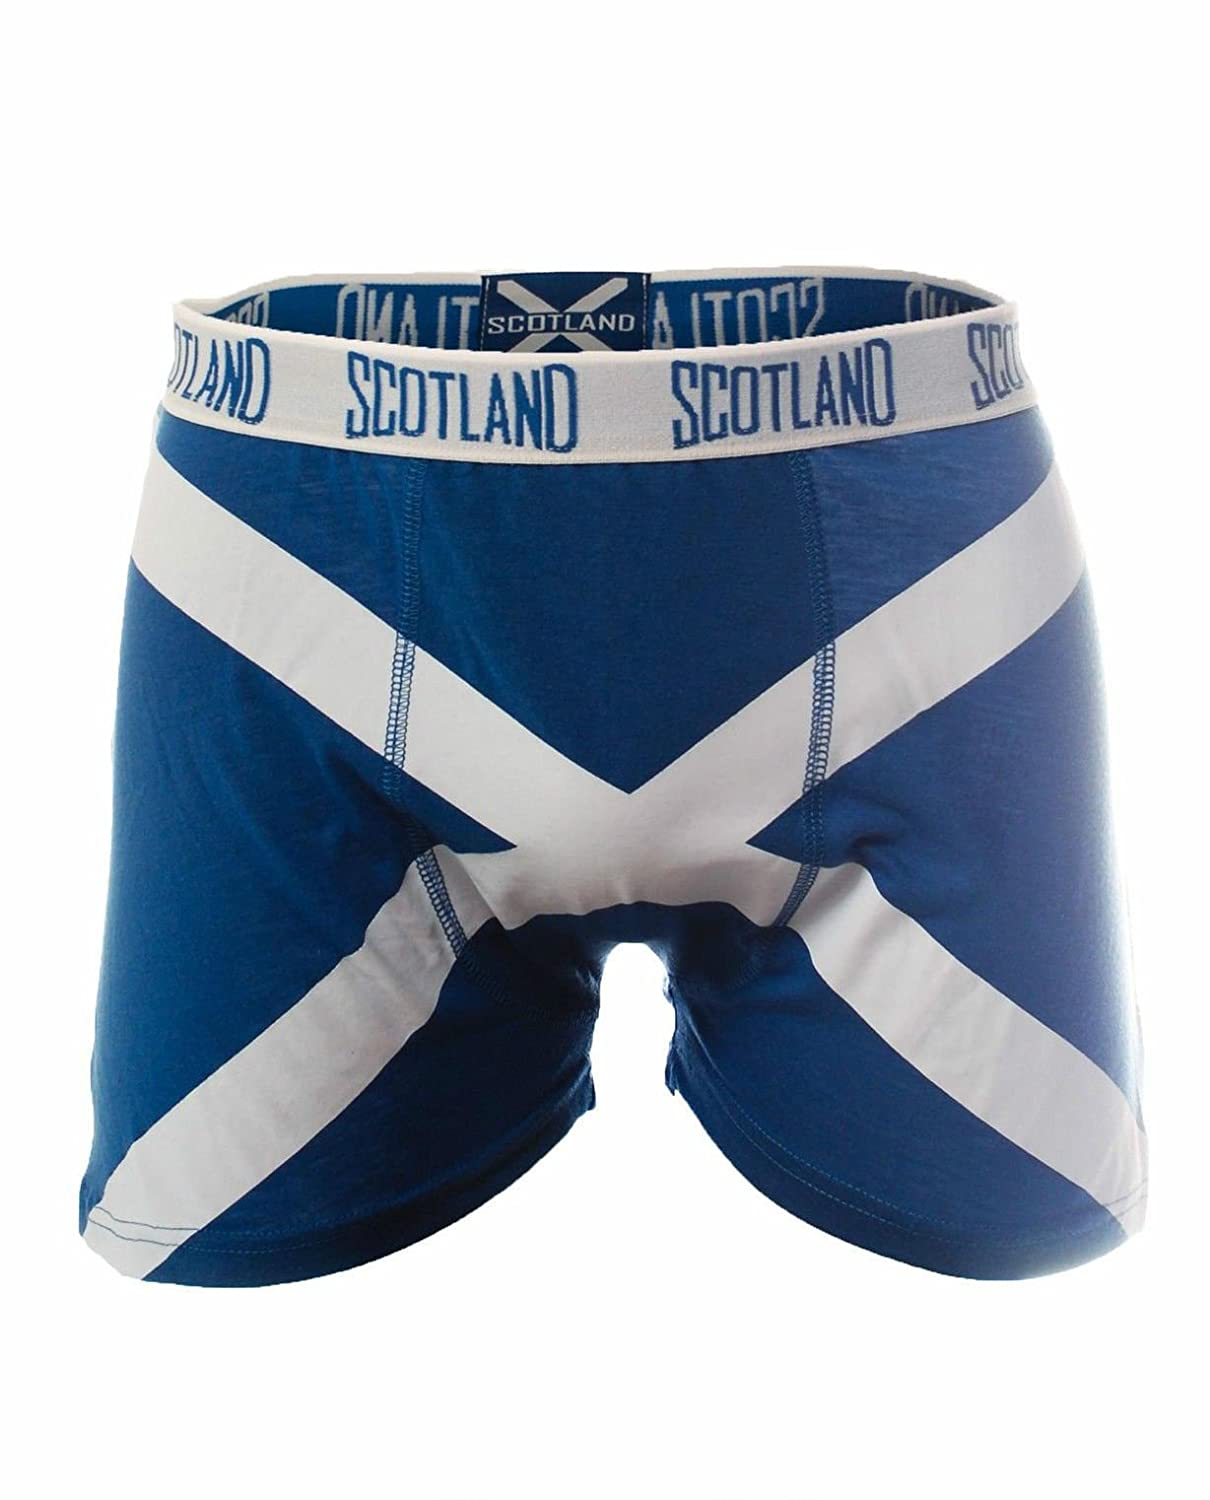 Mens Scottish Boxer Shorts Saltire Design Blue and White with Tags